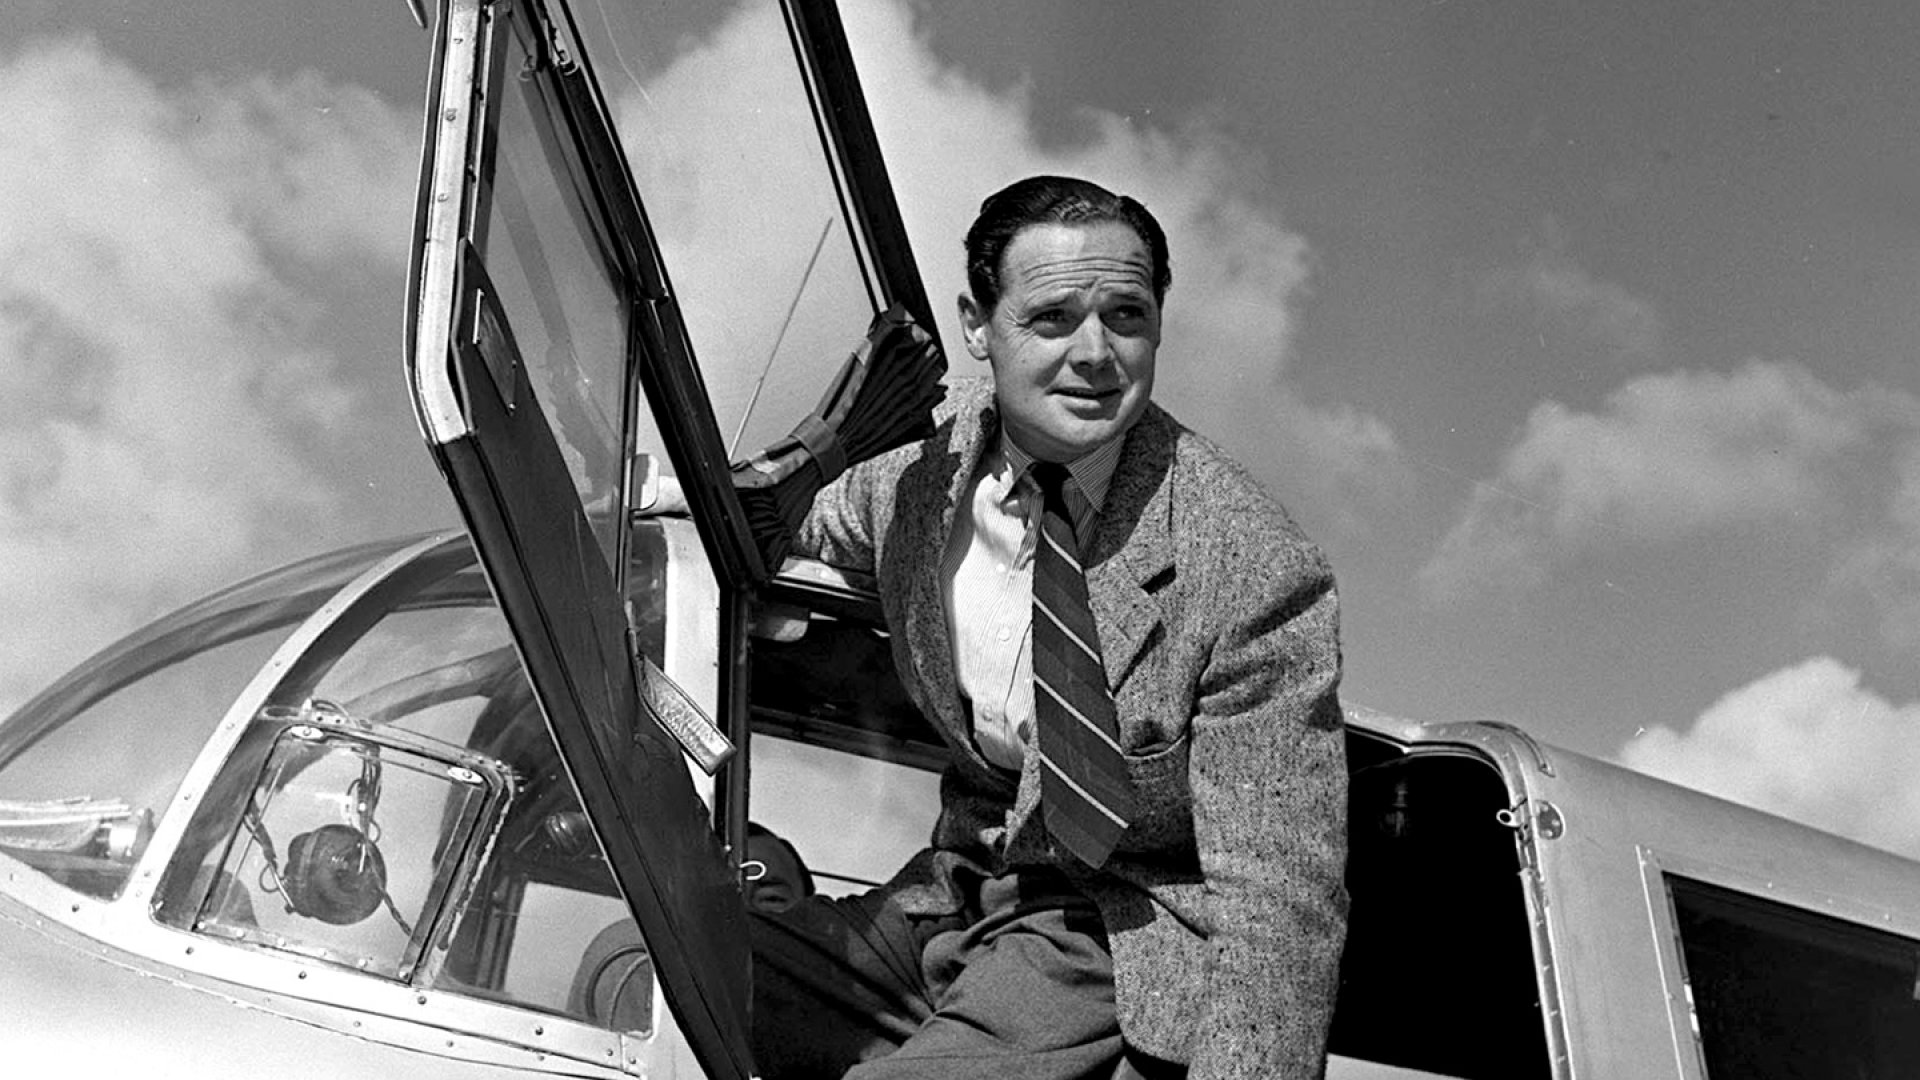 Group captain Douglas Bader, pilot in the RAF during the Battle of Britain in World War Two, 1950.